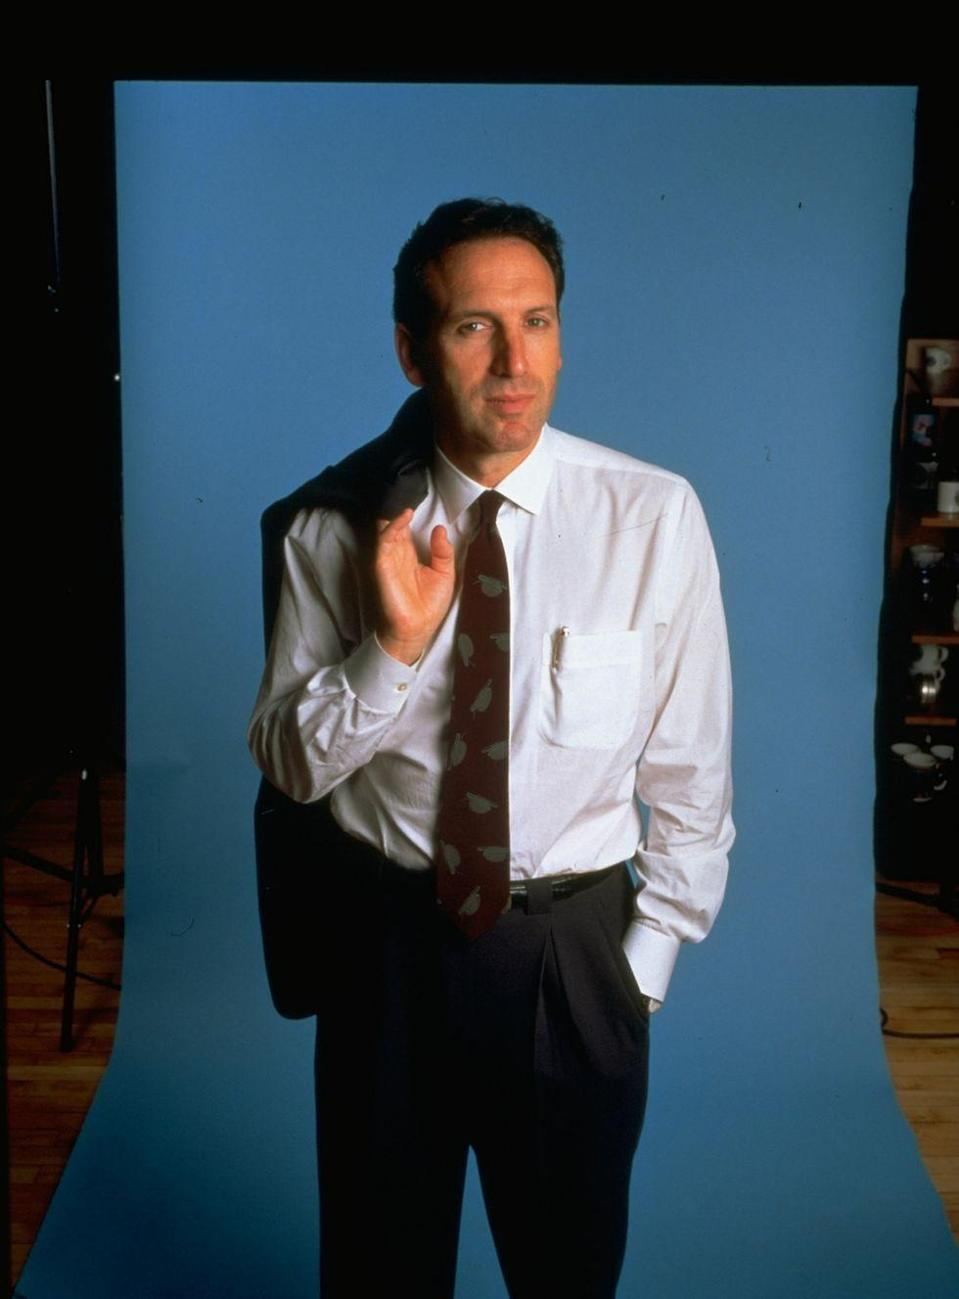 <p>The former Chairman and CEO of the company, Howard Schultz, joined Starbucks in 1982 as the Director of Retail Operations. </p>